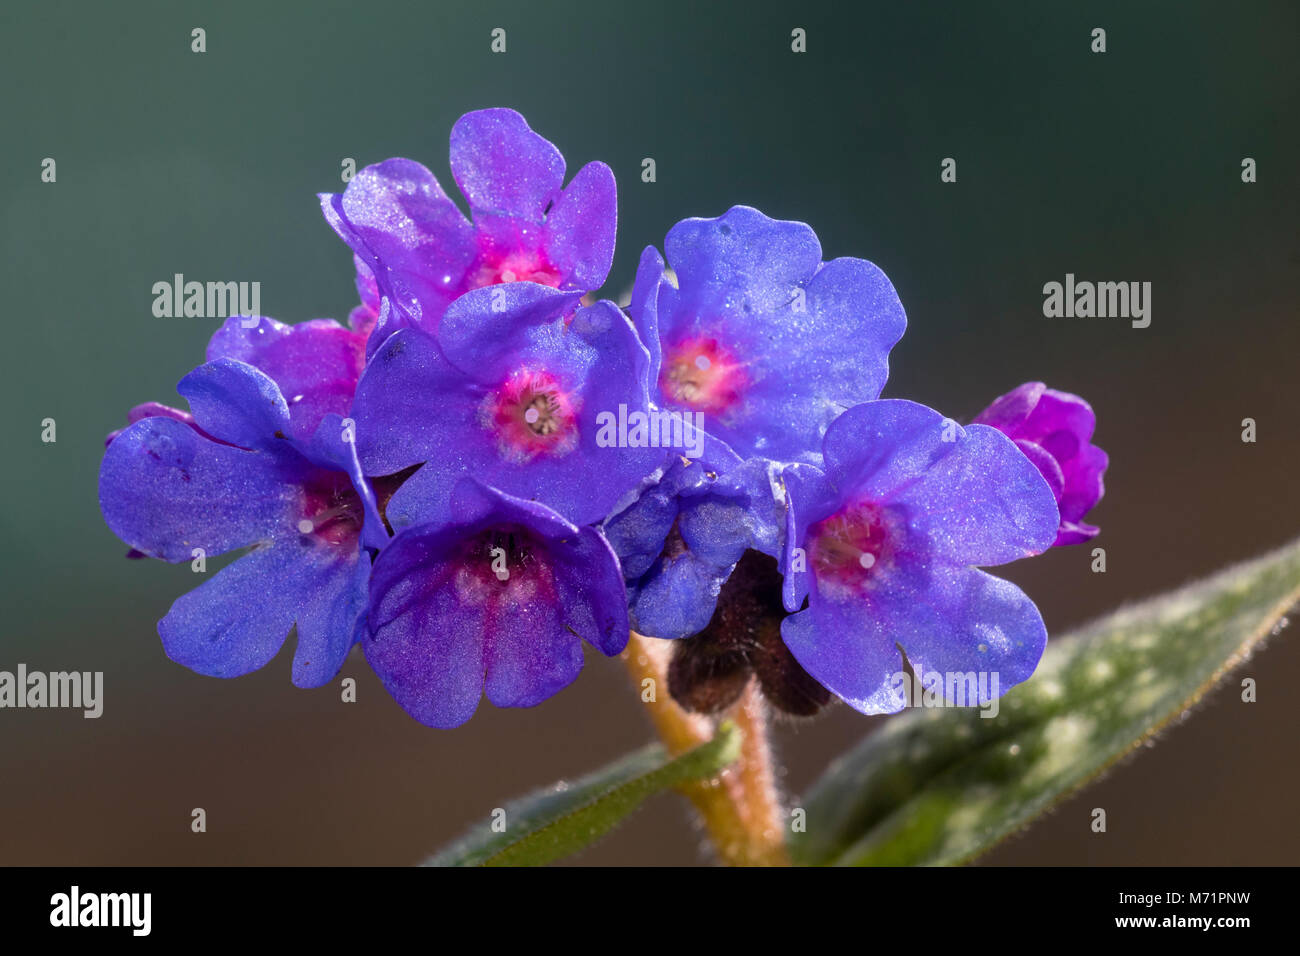 Pink Centred Blue Flowers Of The Spring Flowering Hardy Perennial